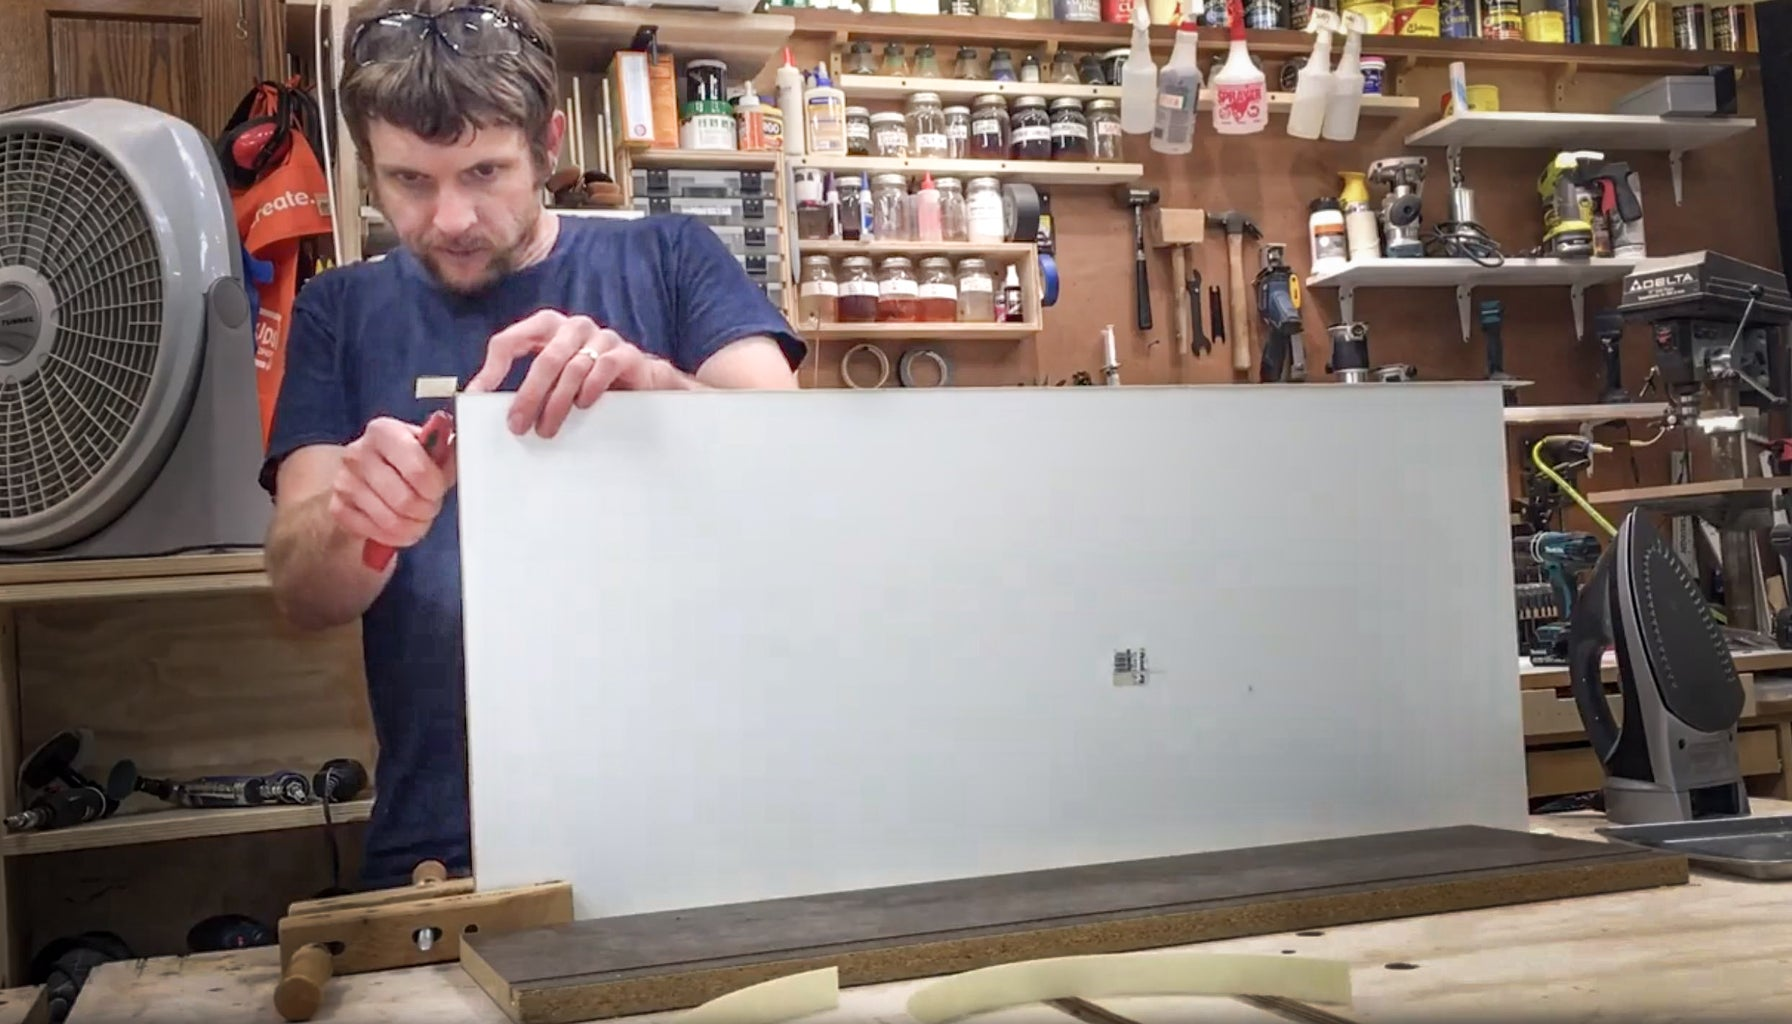 How to Trim Edge Banding With Oscillating Tool (easily, Safely)